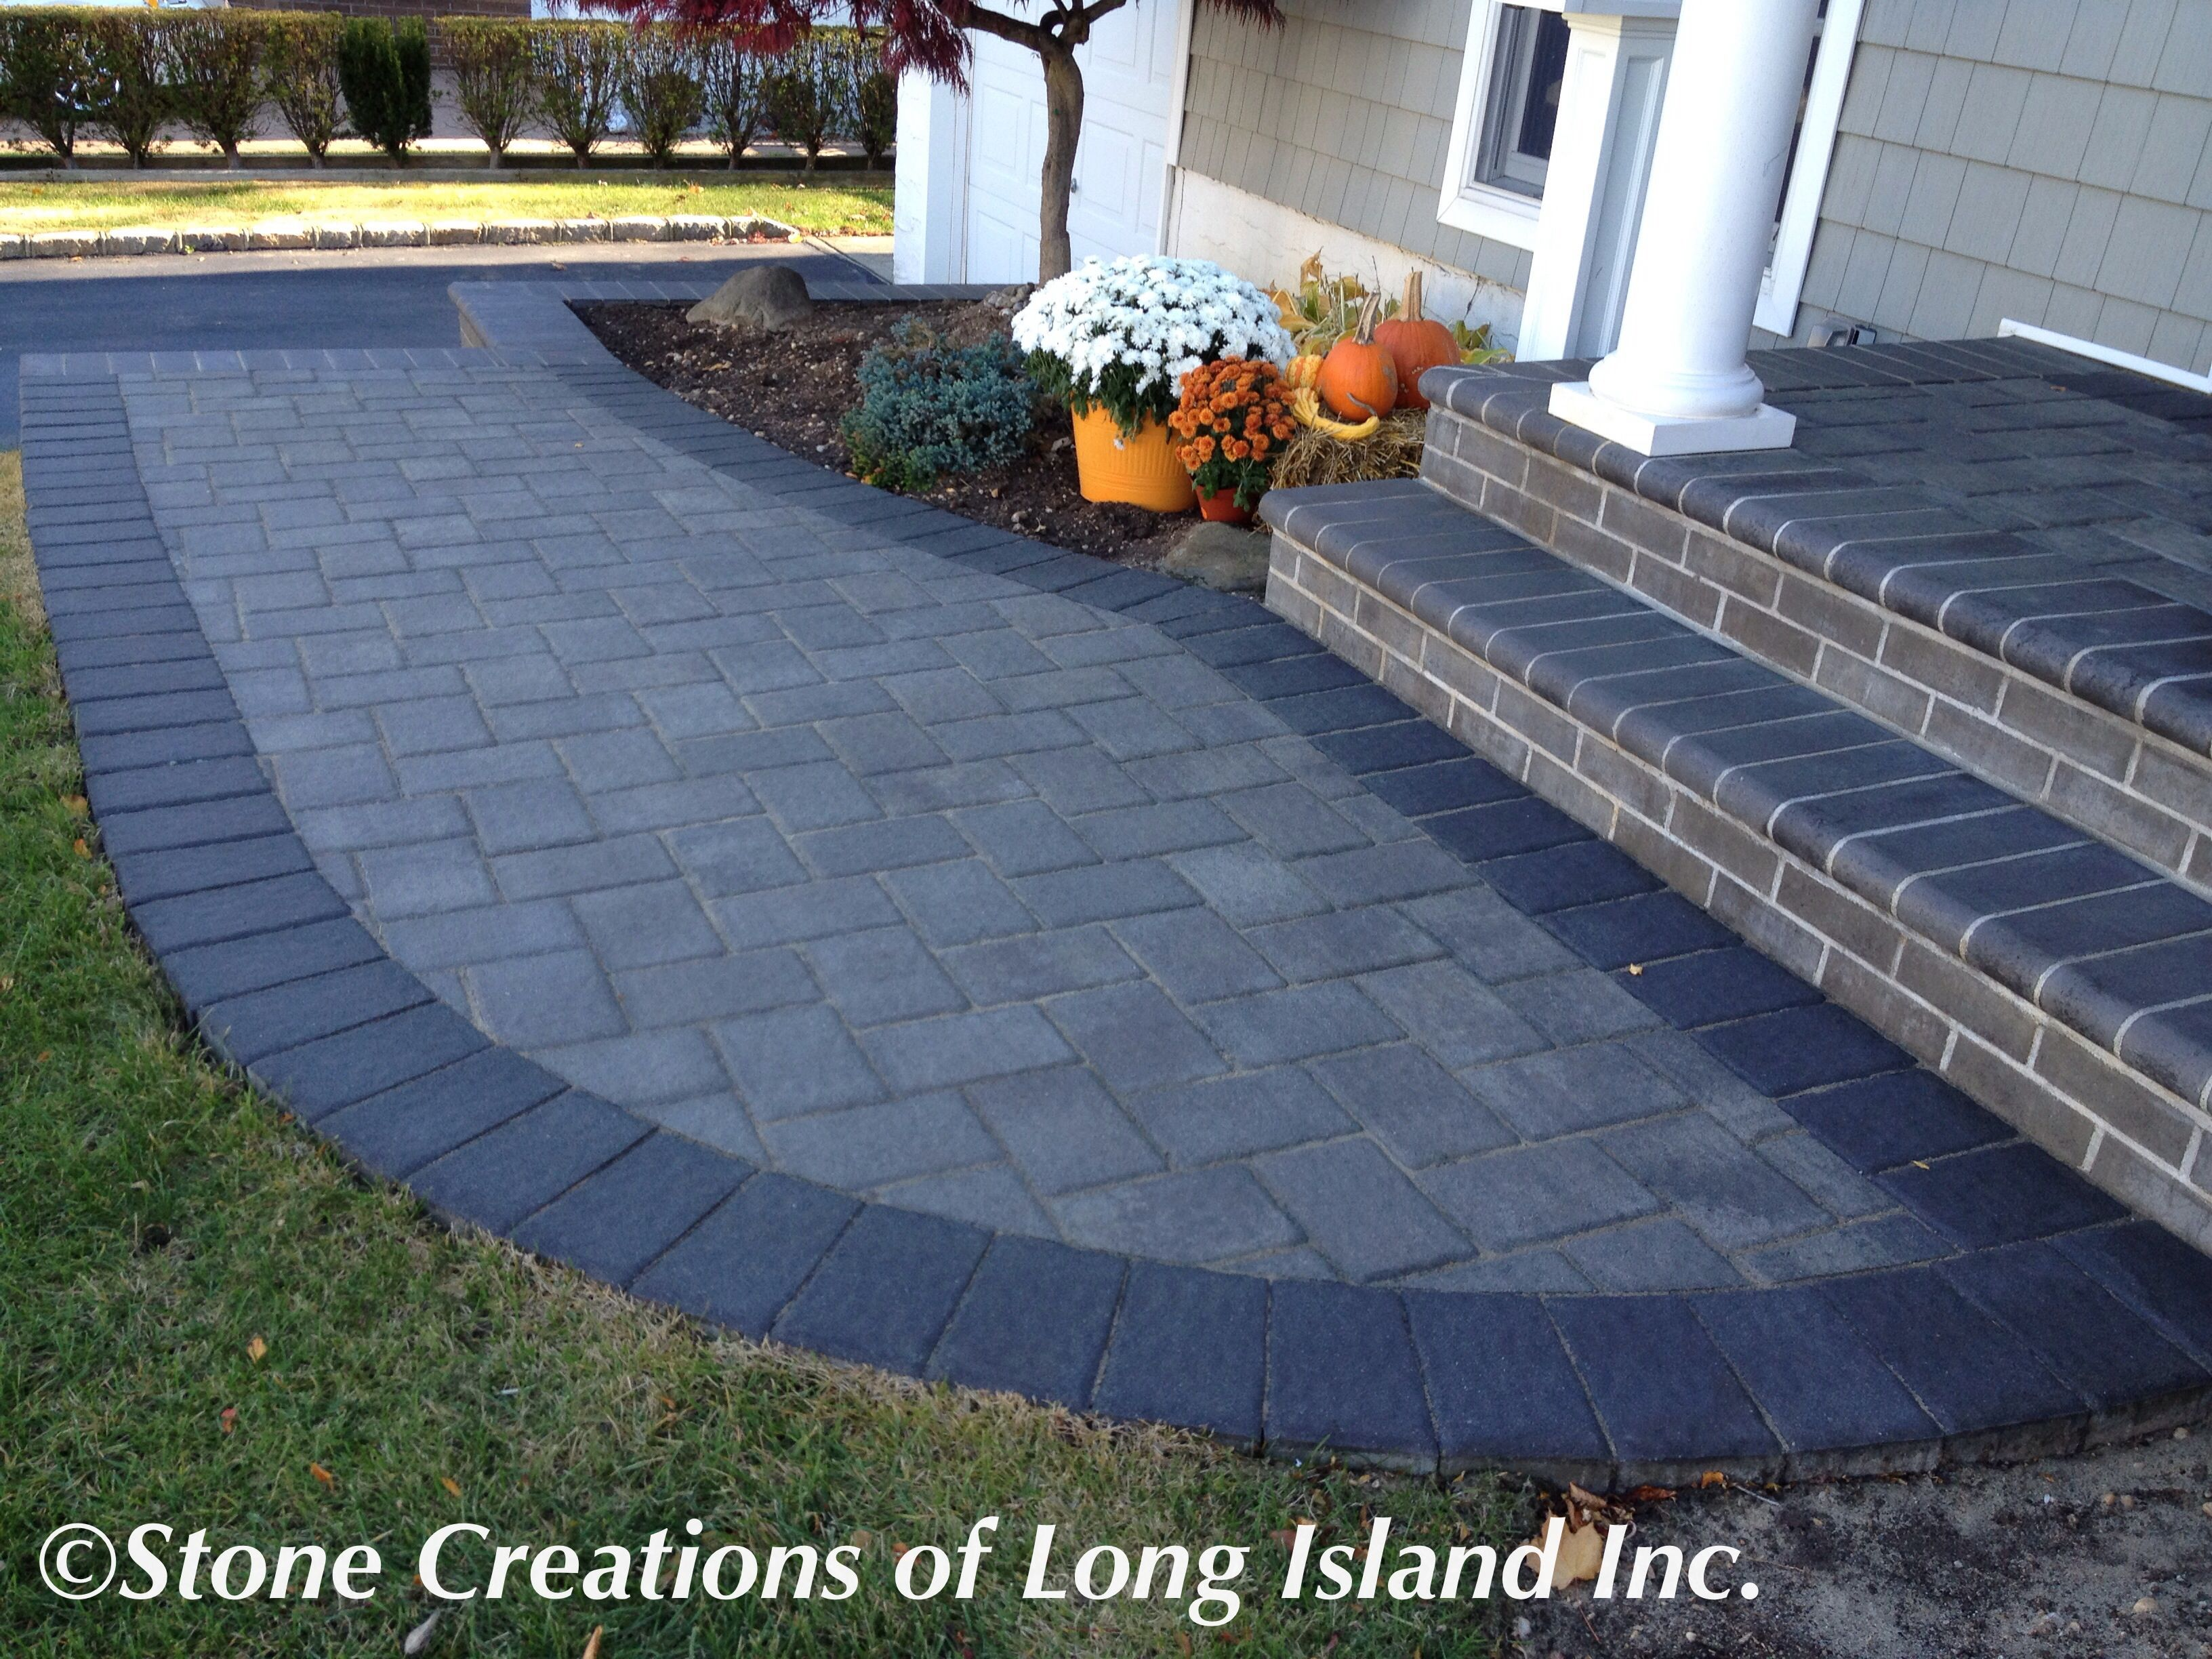 Cambridge Paving Stones Onyx Natural With Border Long Island S Masonry Contractor Www Stonecreationsoflongisland